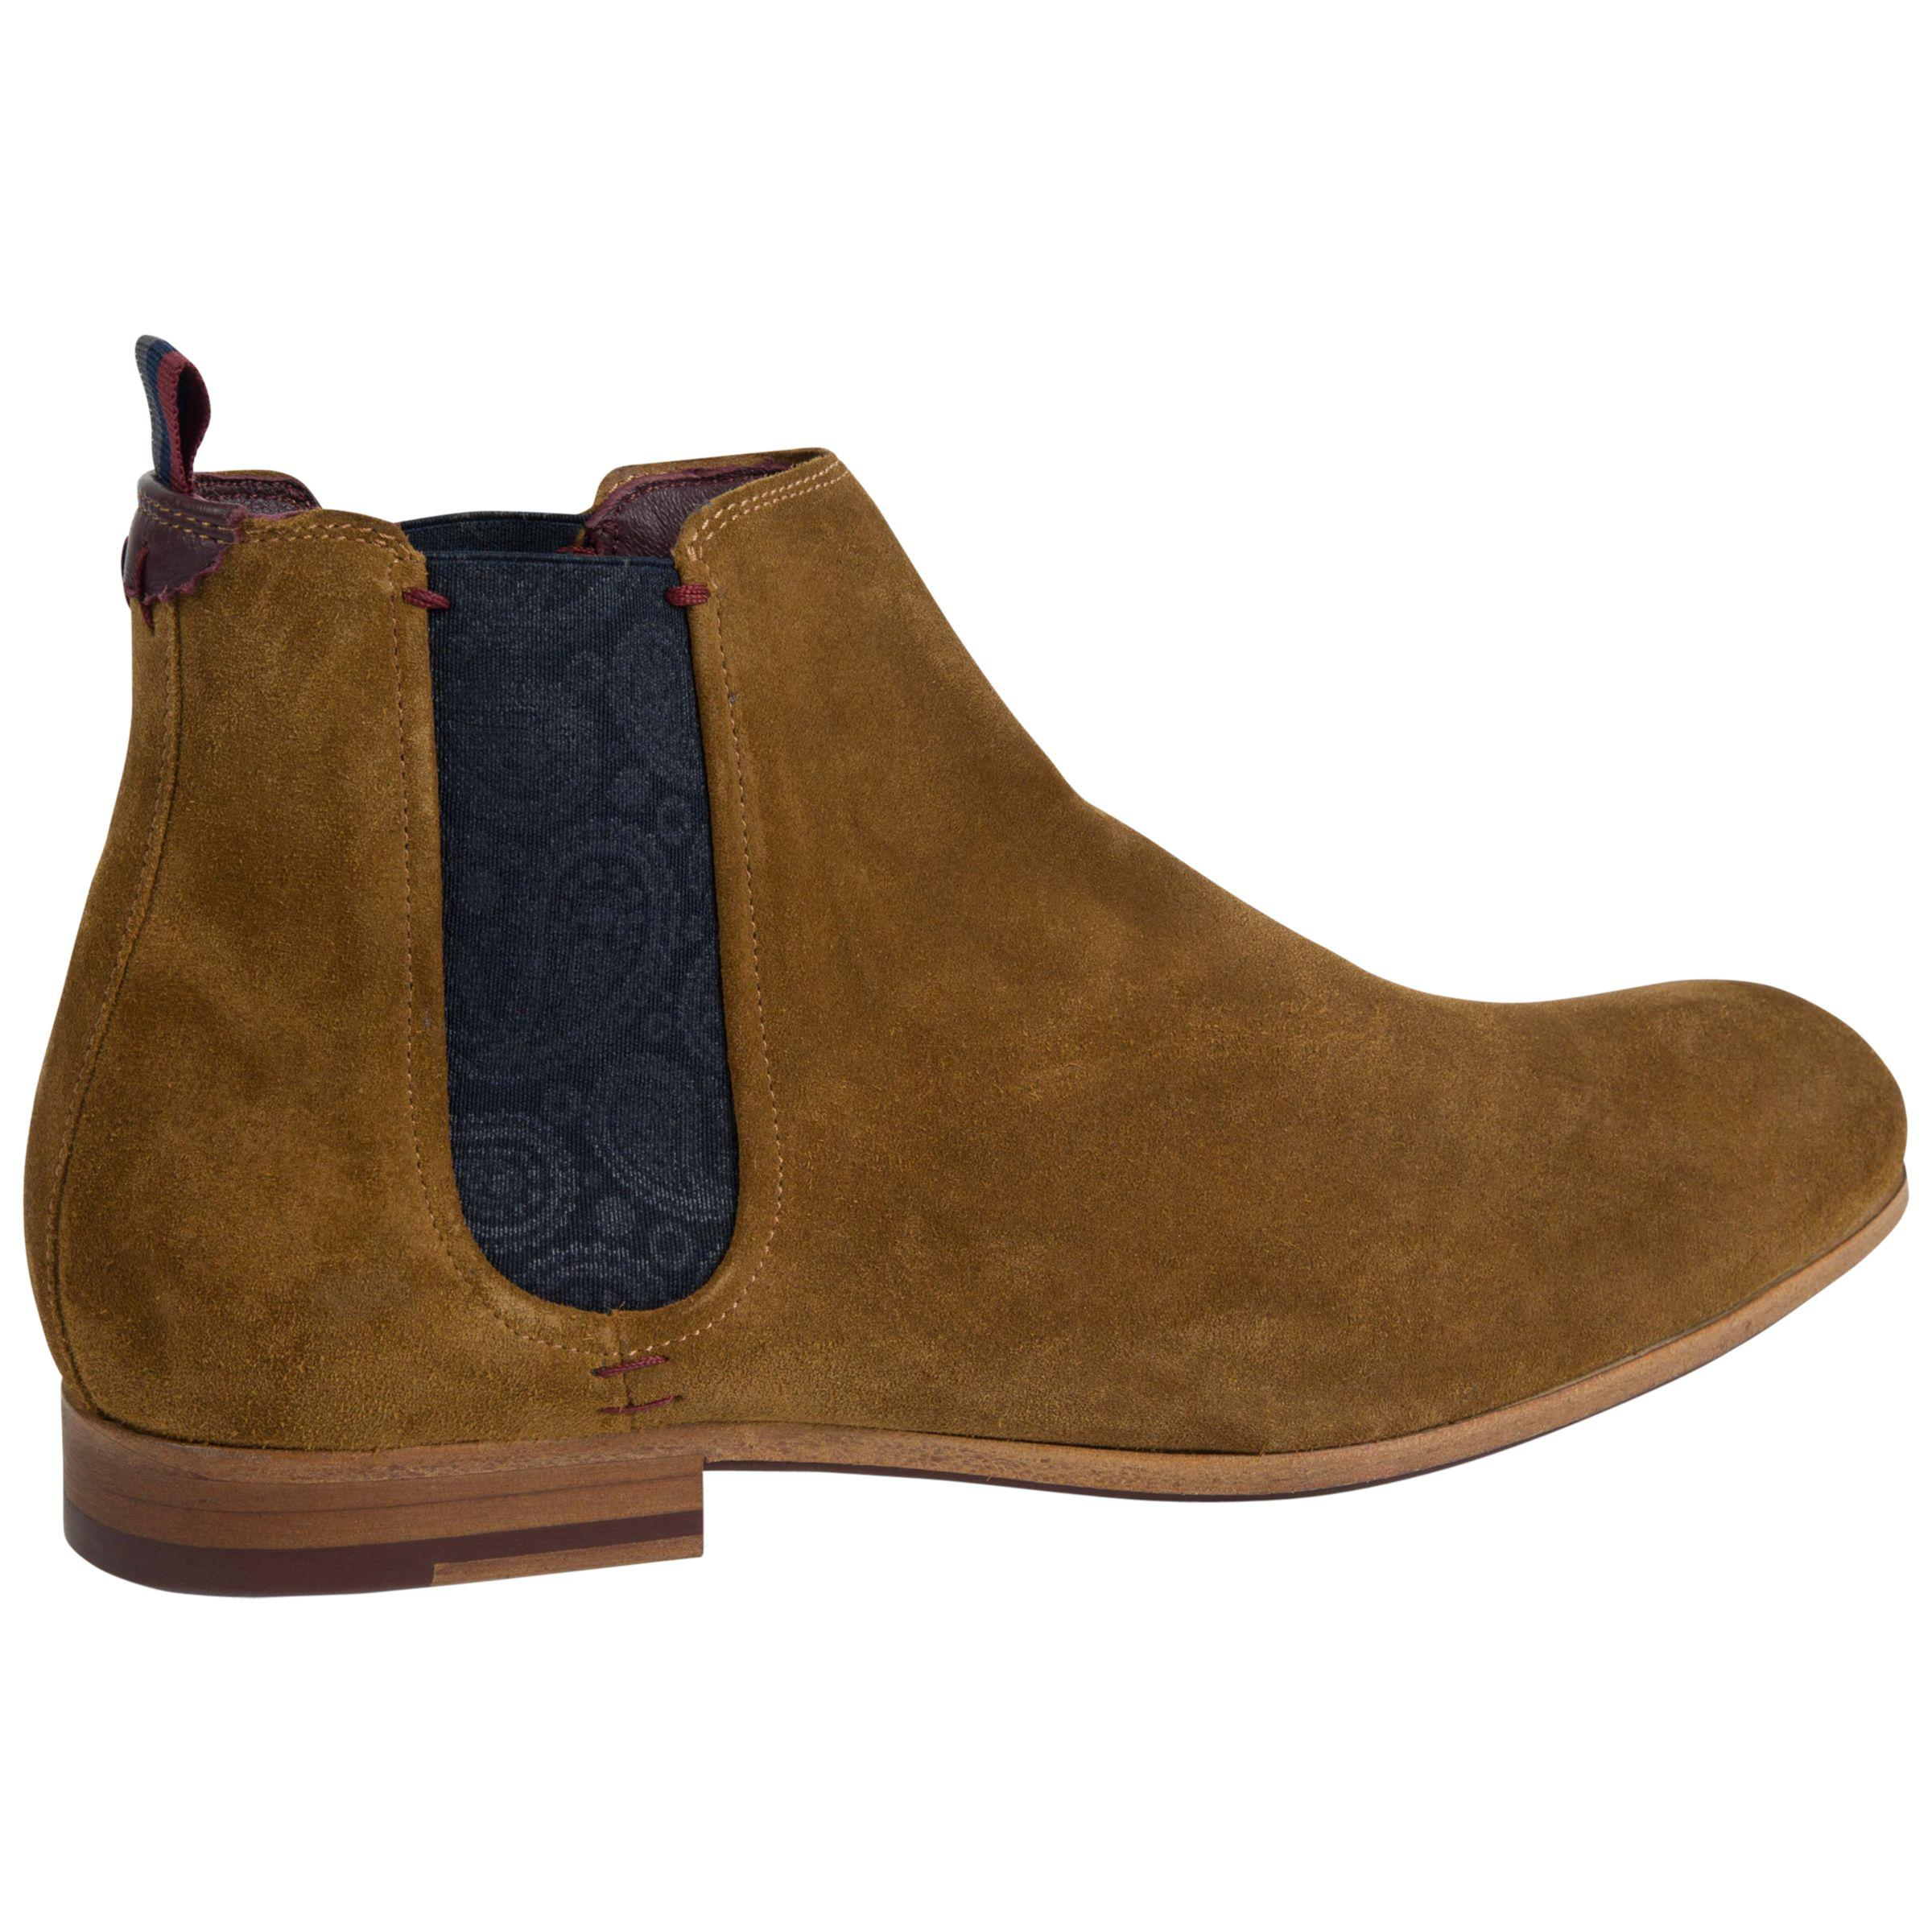 1cee0385f2dd Ted Baker Saldor Chelsea Boots in Brown for Men - Lyst